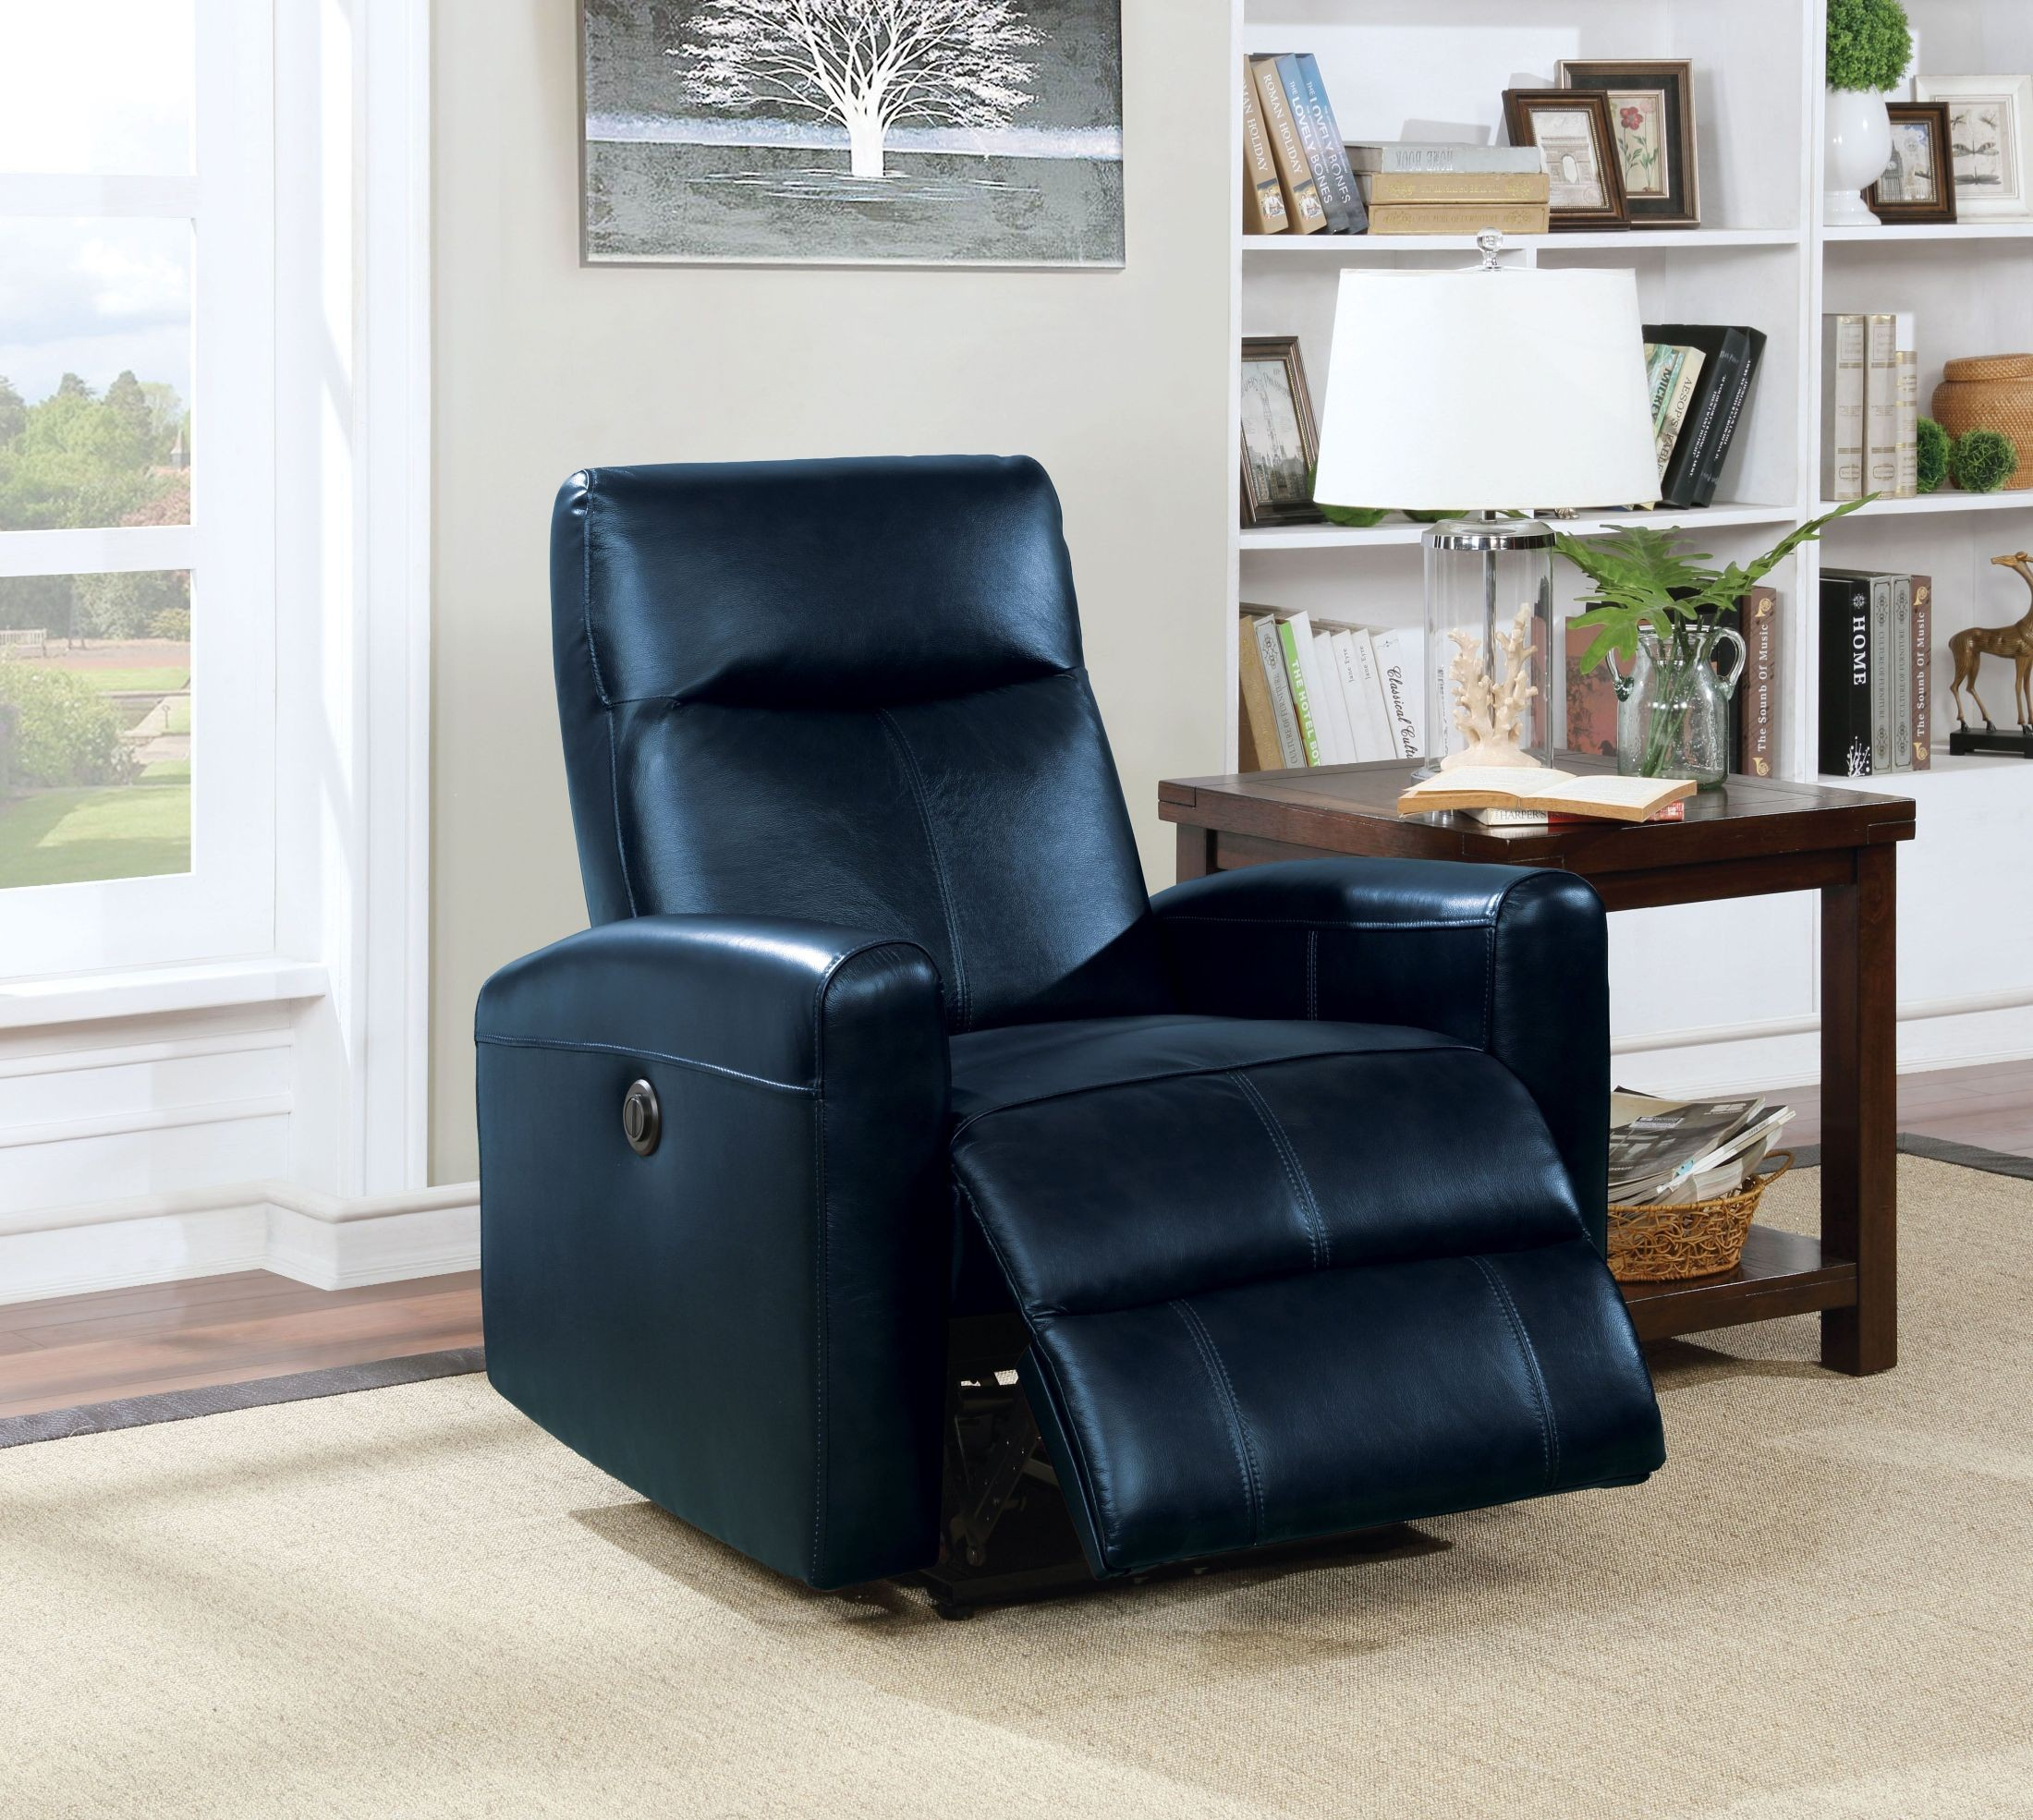 Brilliant Blane Navy Blue Leather Power Recliner Gmtry Best Dining Table And Chair Ideas Images Gmtryco